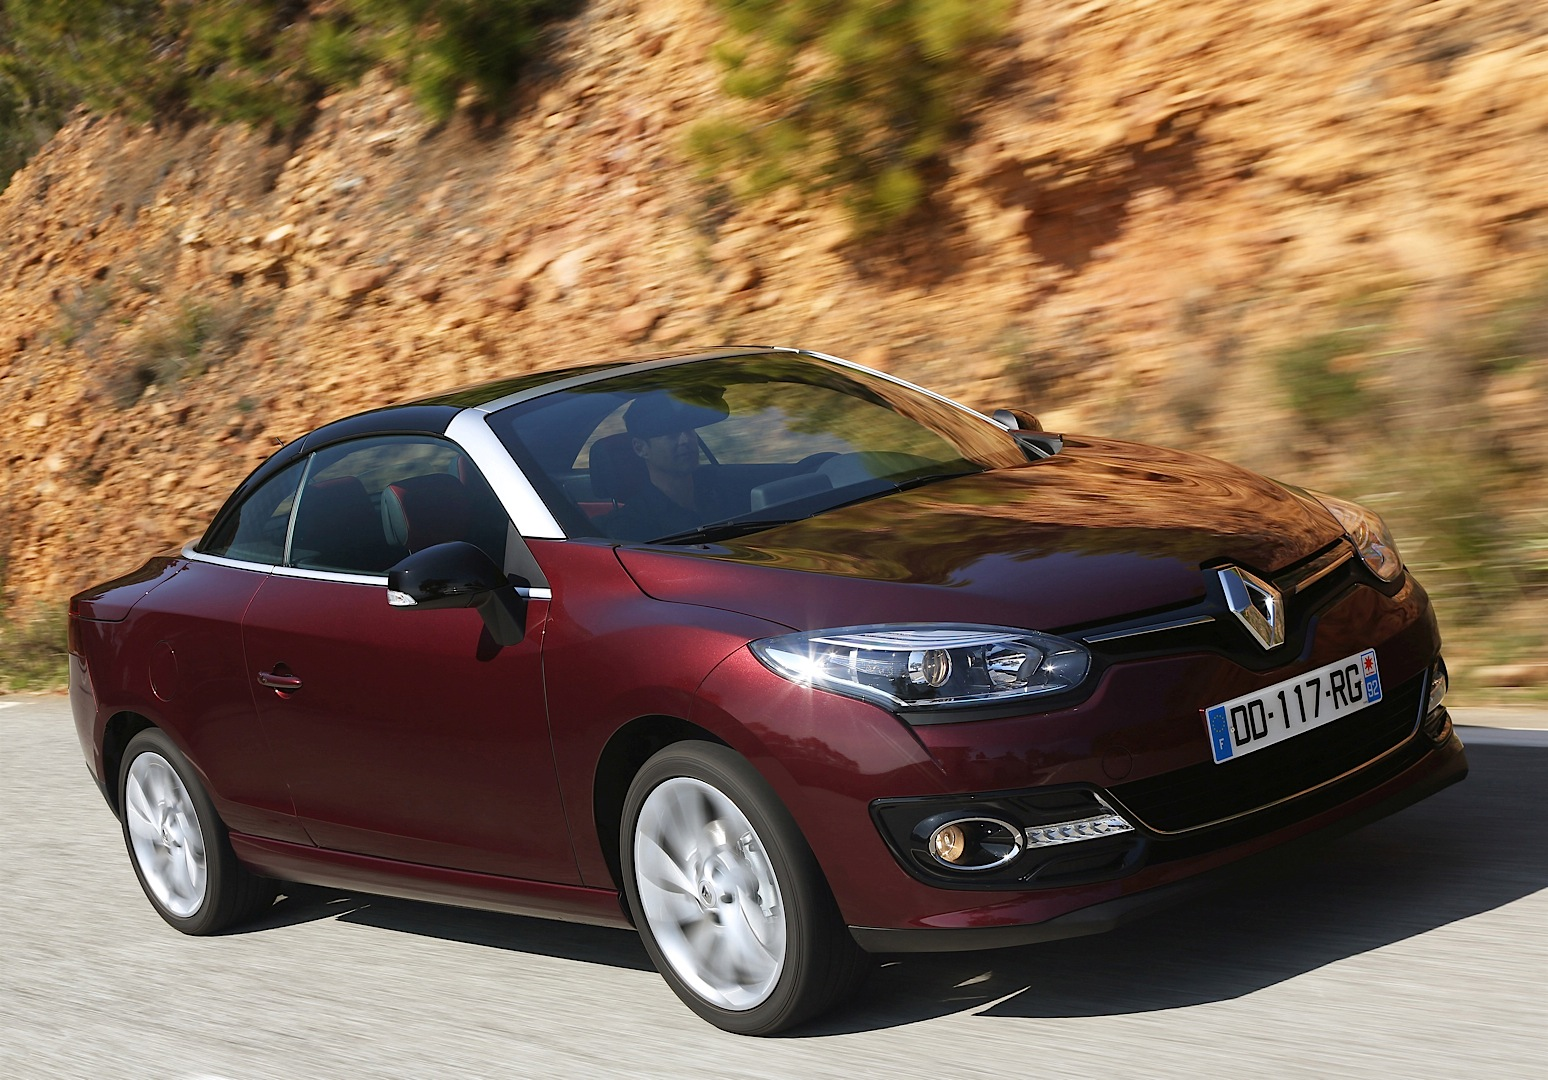 renault launched megane cc facelift and 1 2 turbo with 130 hp autoevolution. Black Bedroom Furniture Sets. Home Design Ideas